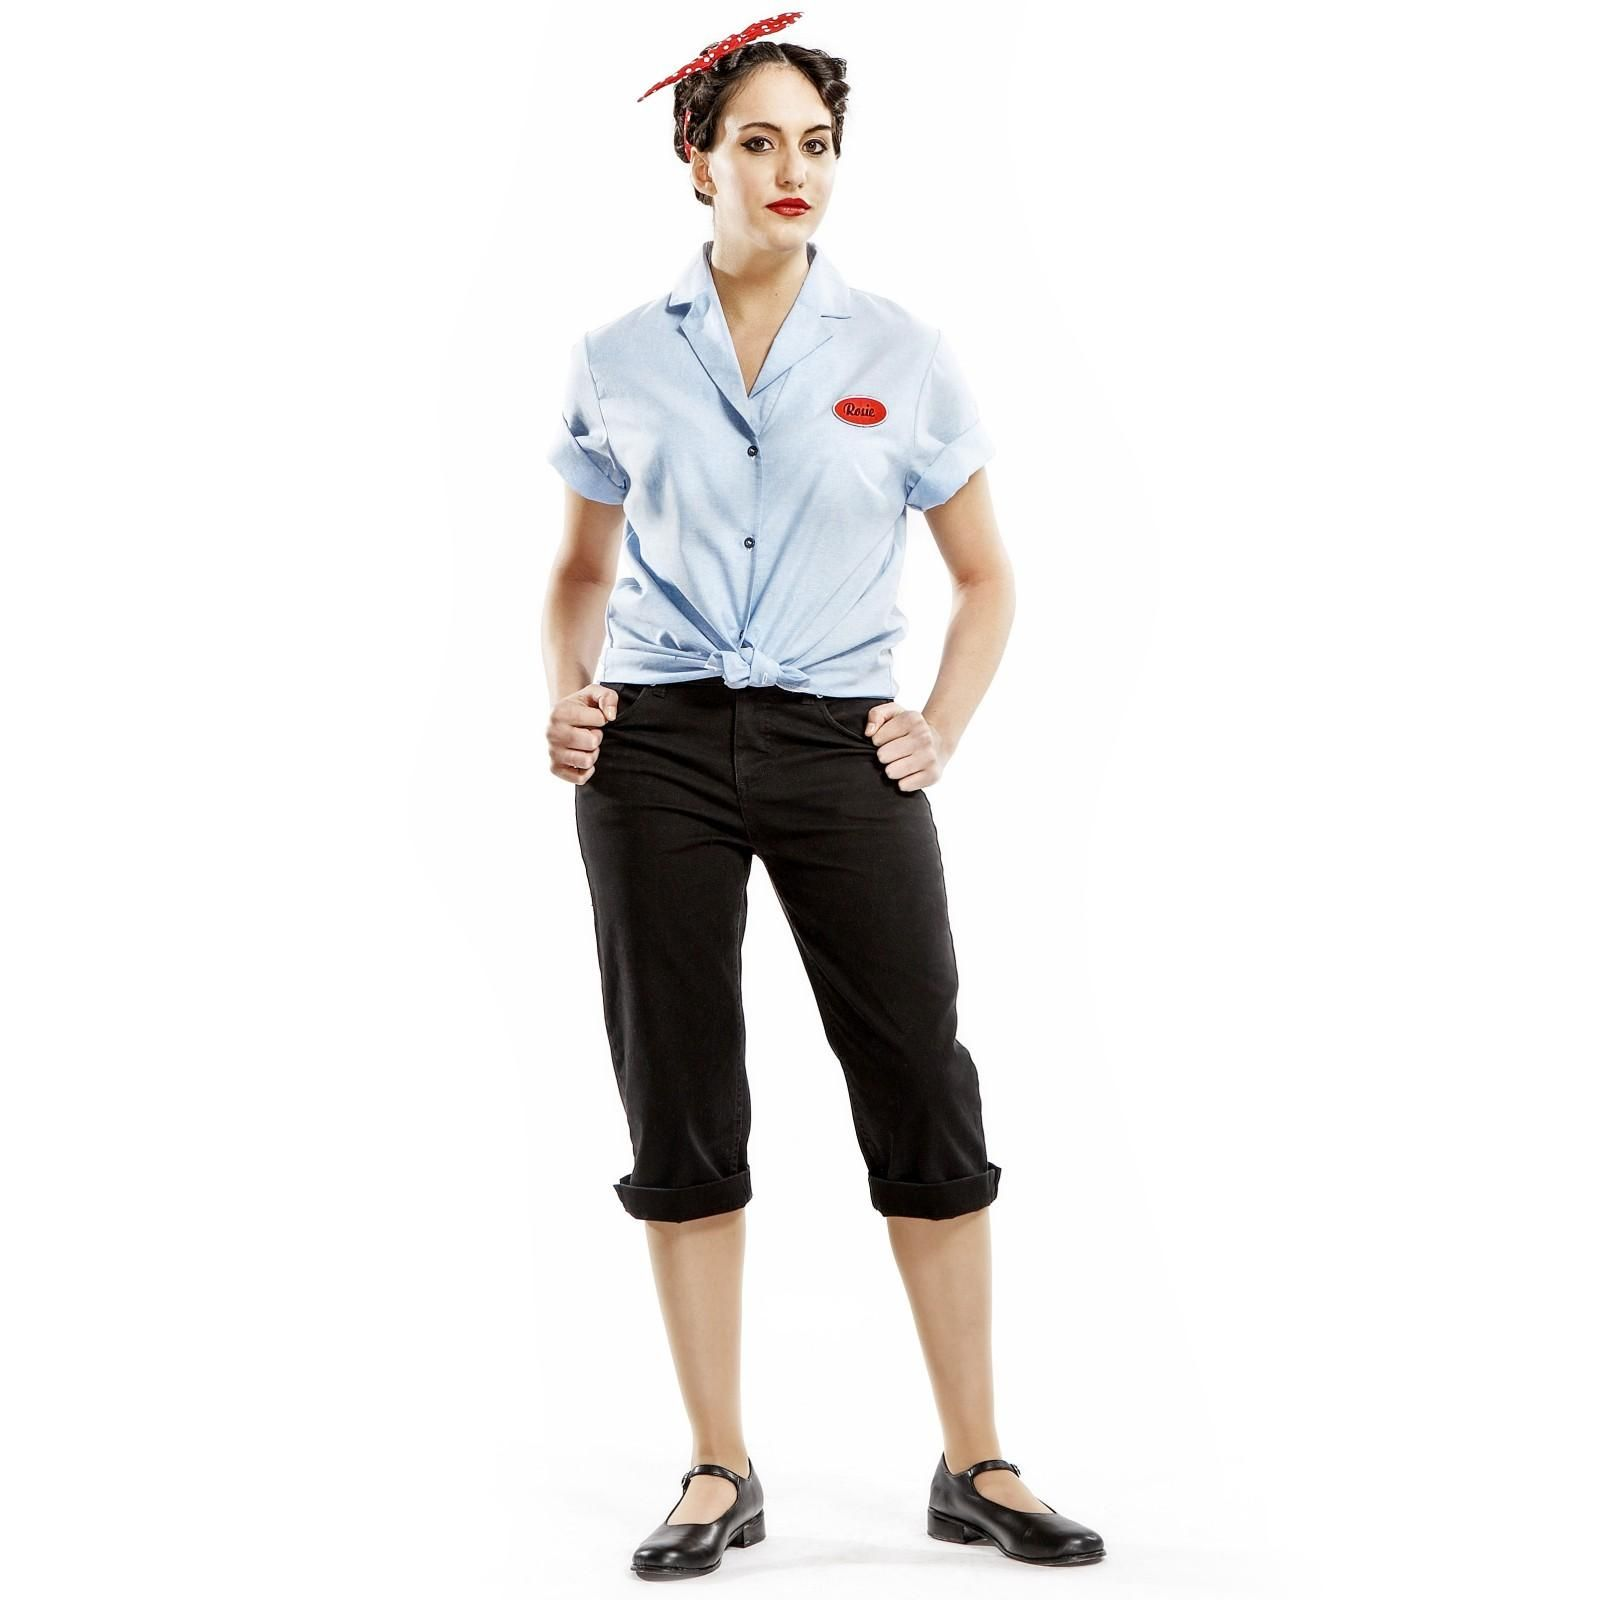 explore rosie the riveter costume rosie riveter and more - Rosie The Riveter Halloween Costume